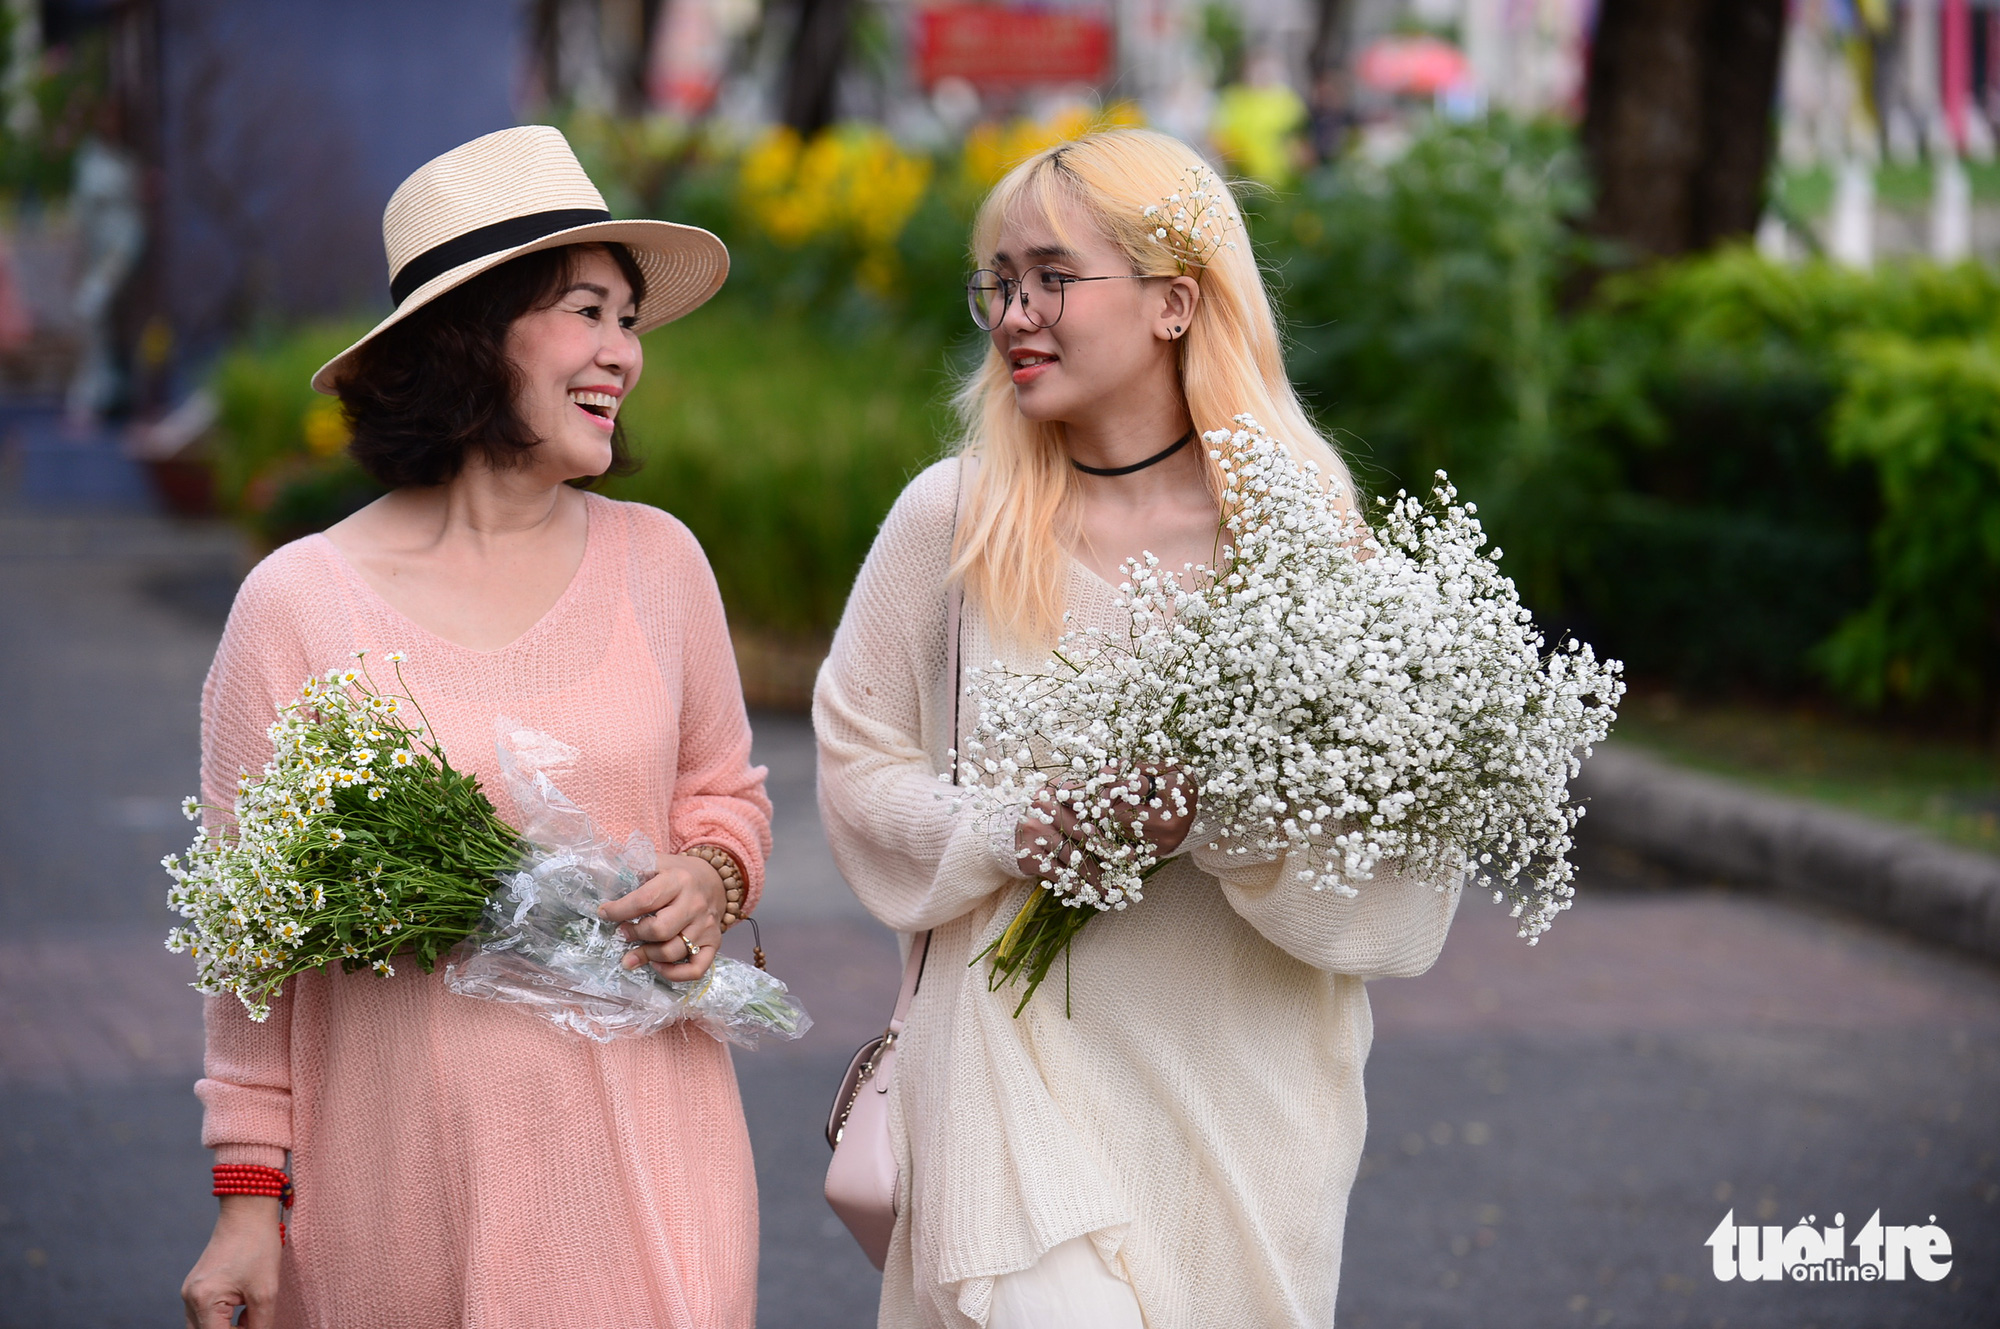 People visit the Phu My Hung Spring Flowers Festival2021 in District 7, Ho Chi Minh City, February 4, 2021. Photo: Quang Dinh / Tuoi Tre